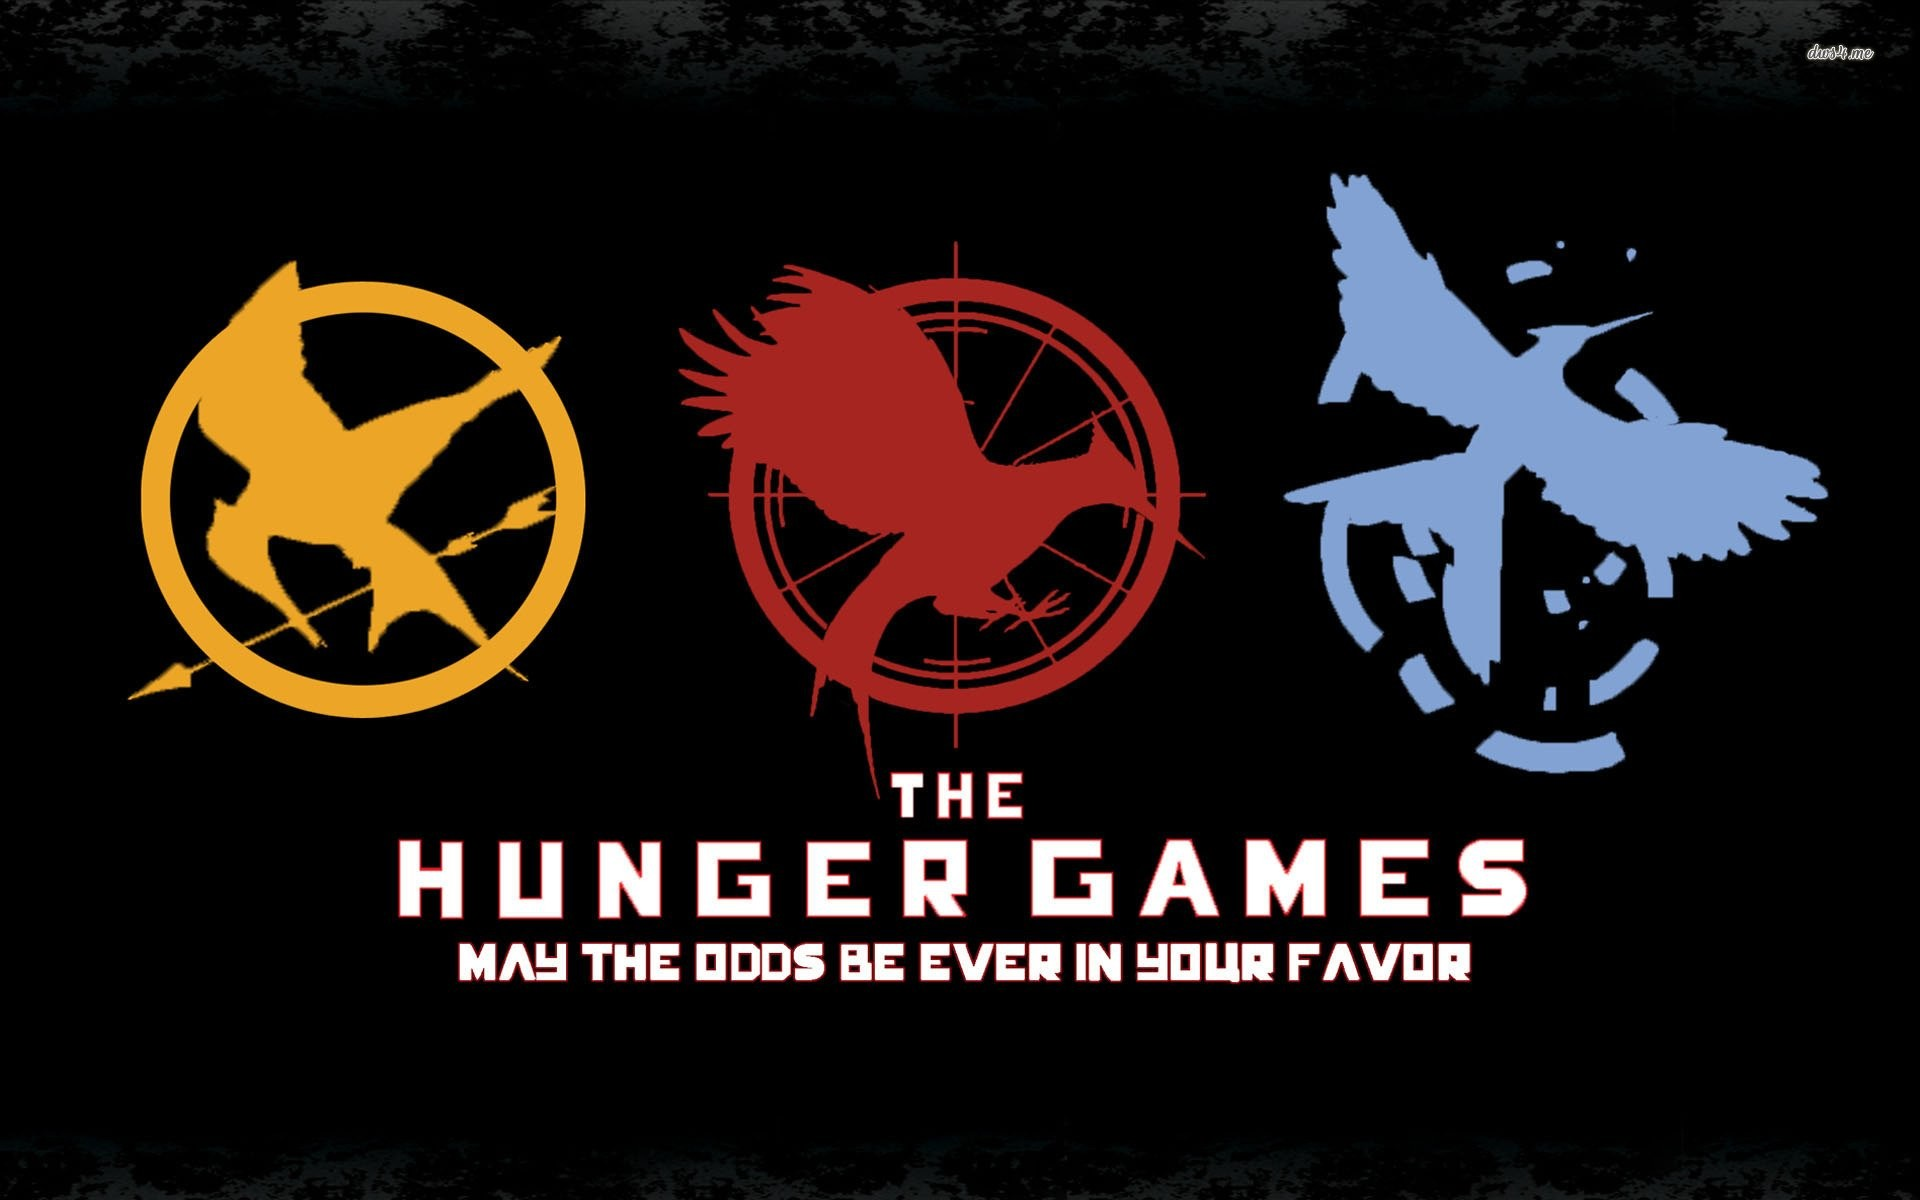 1920x1200 Hunger Games Quotes wallpaper images